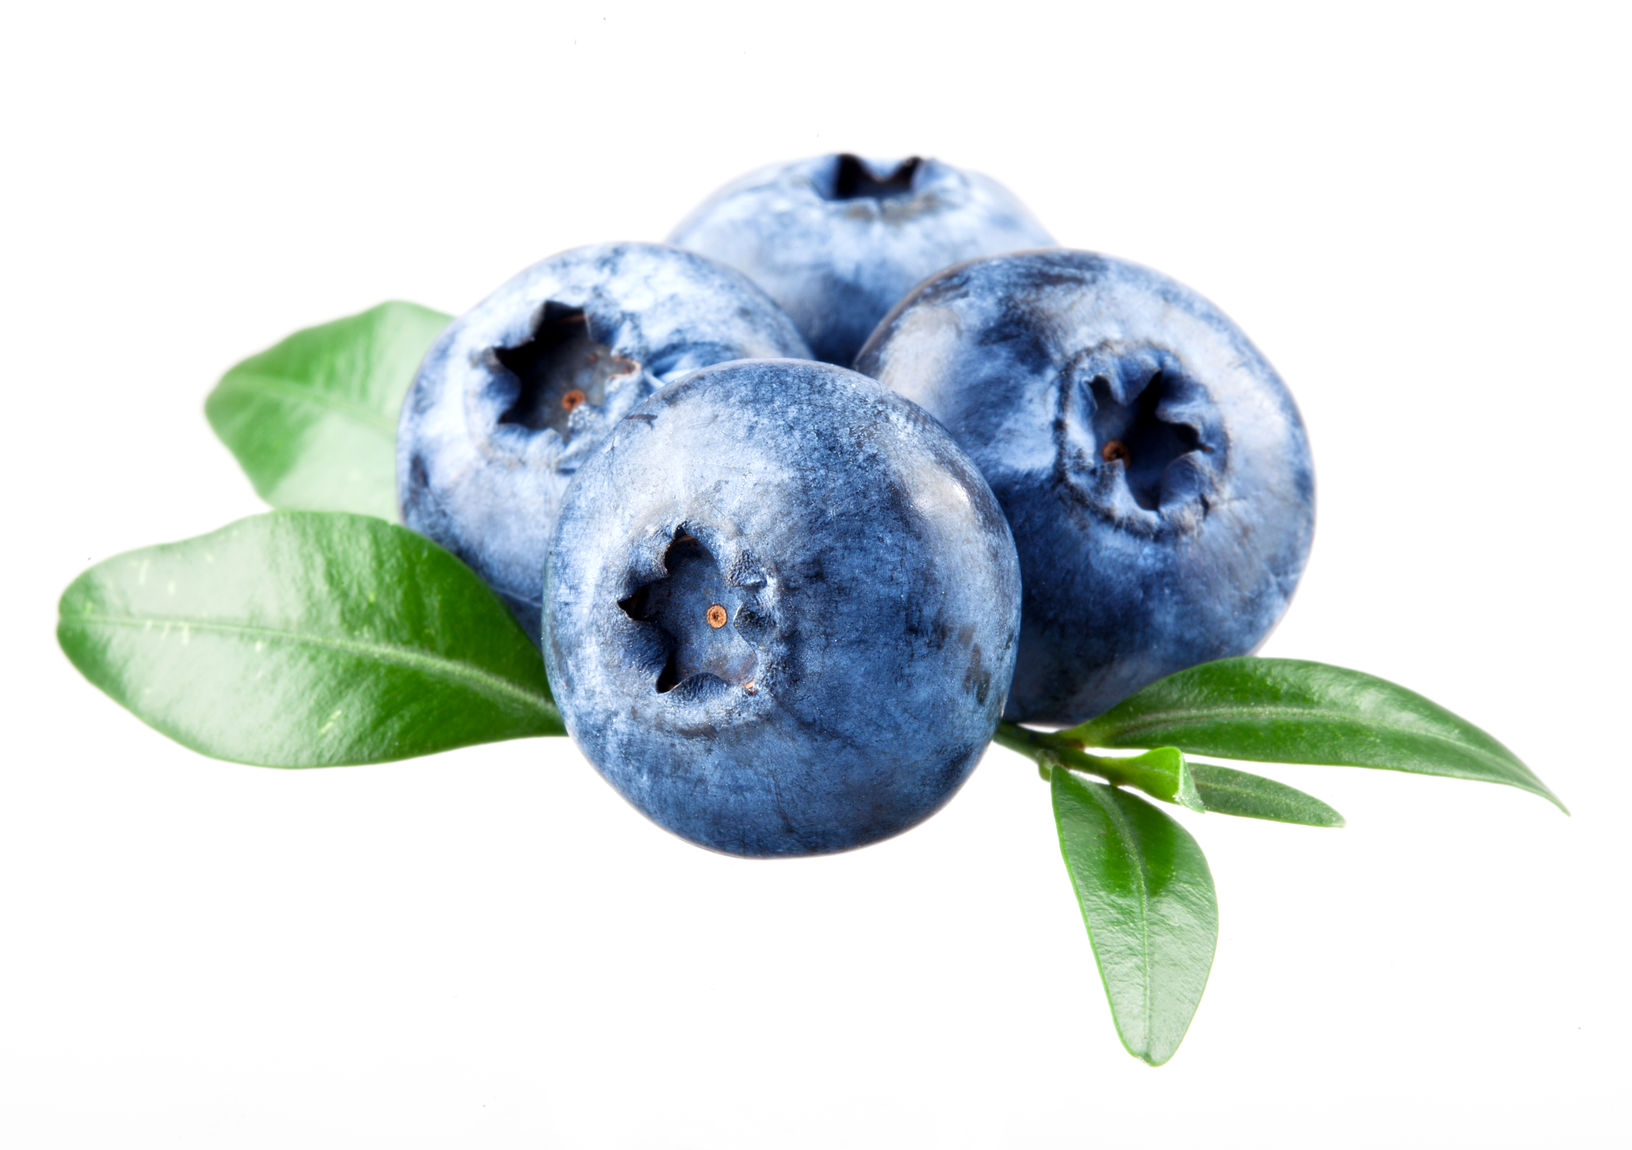 blueberries improve memory and learning in seniors